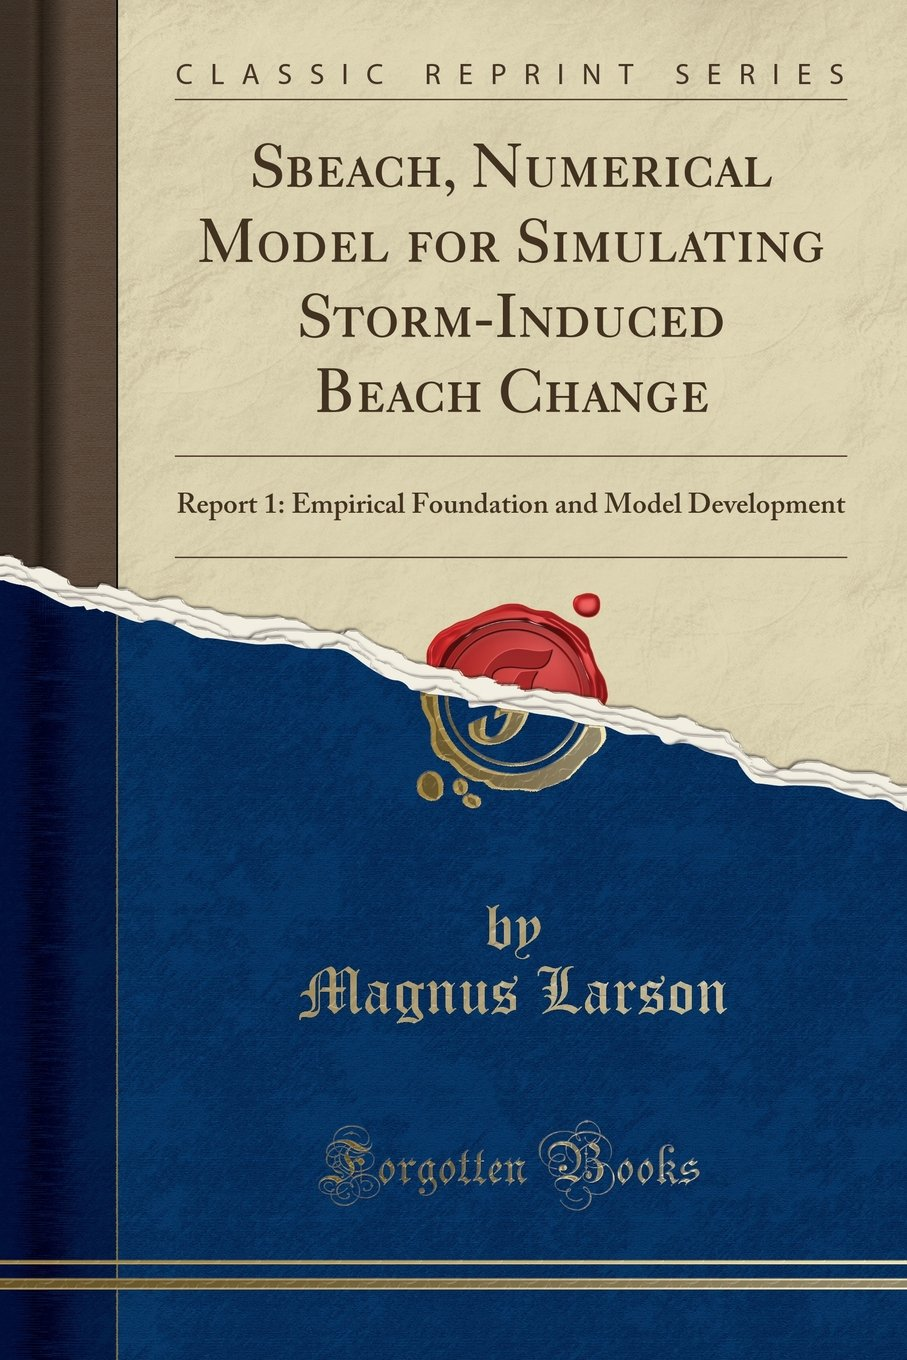 Sbeach, Numerical Model for Simulating Storm-Induced Beach Change: Report 1: Empirical Foundation and Model Development (Classic Reprint) ebook